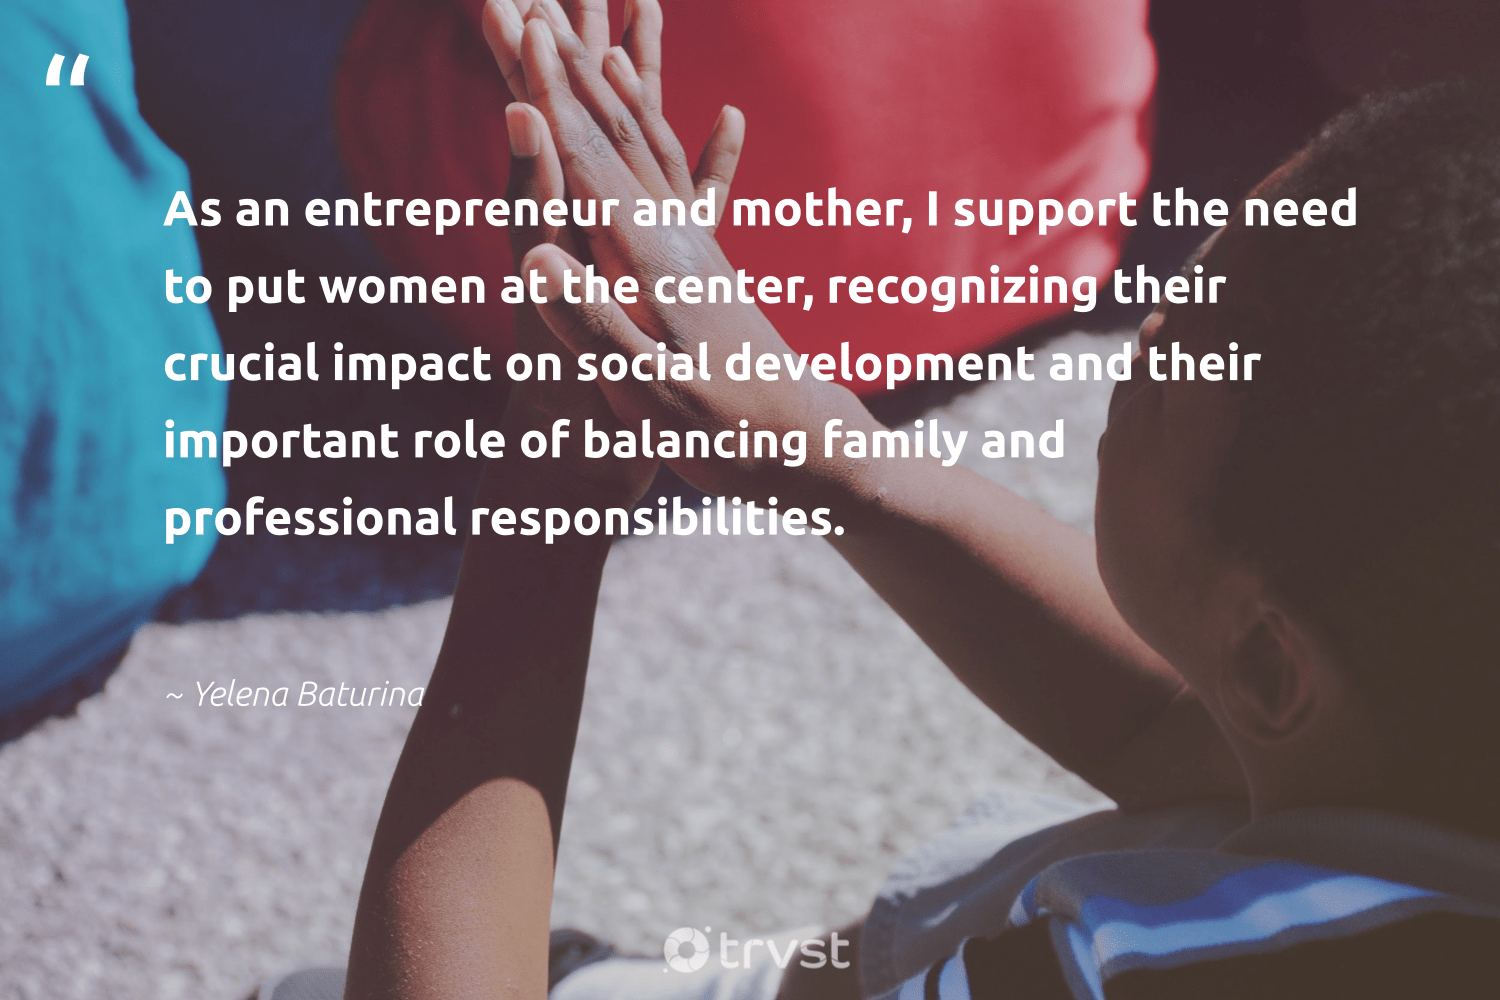 """As an entrepreneur and mother, I support the need to put women at the center, recognizing their crucial impact on social development and their important role of balancing family and professional responsibilities.""  - Yelena Baturina #trvst #quotes #impact #women #family #development #entrepreneur #entrepreneurlife #weareallone #futureofwork #dosomething #entrepreneurship"